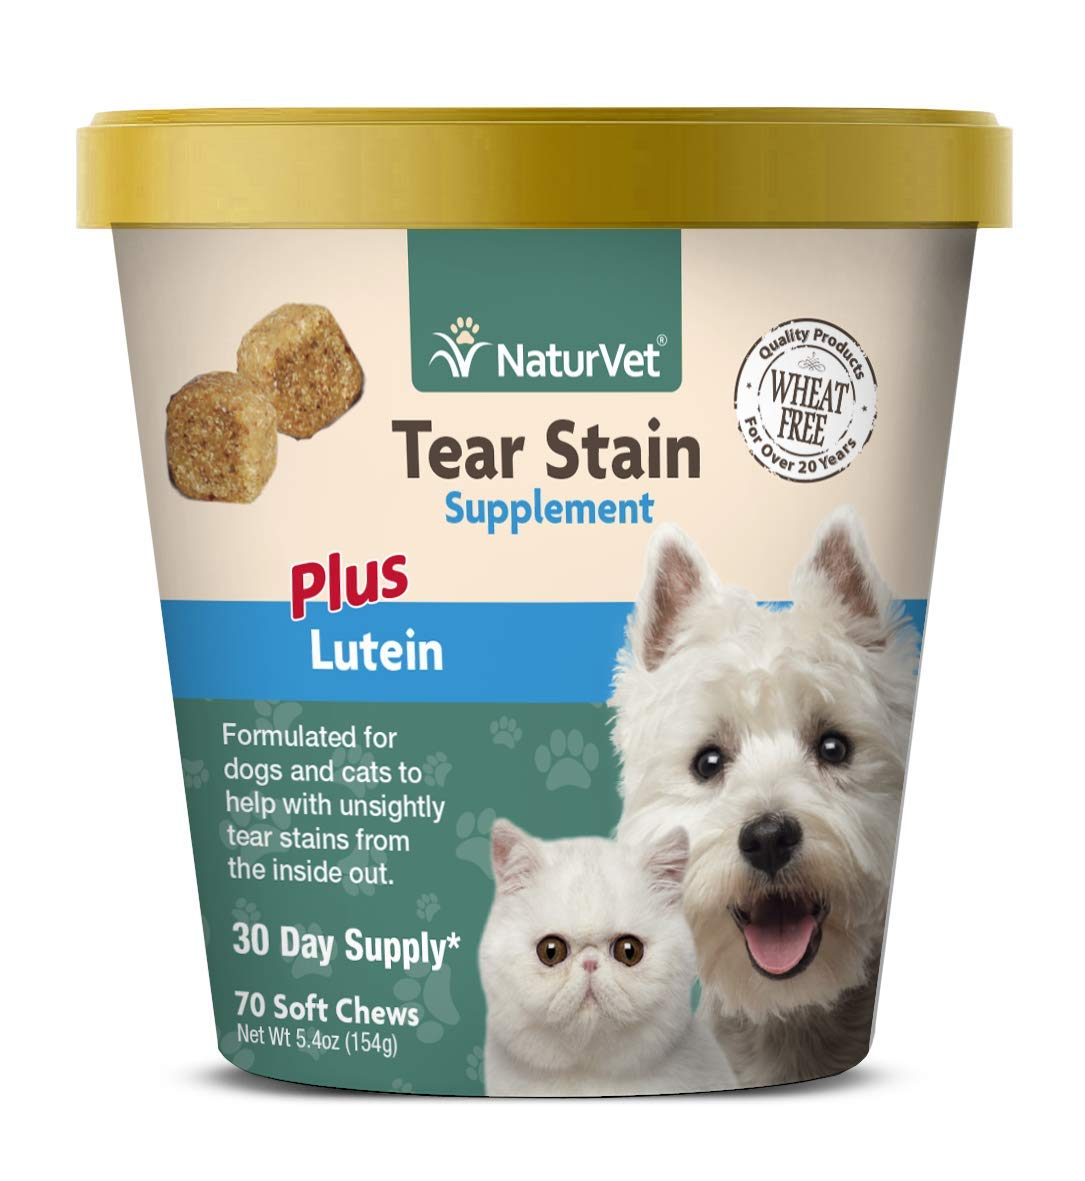 NaturVet - Tear Stain Plus Lutein - Eliminates Unsightly Tear Stains - Enhanced with Cranberry Extract, Marshmallow Root & Oregon Grape Root - for Dogs & Cats - 70 Soft Chews by NaturVet